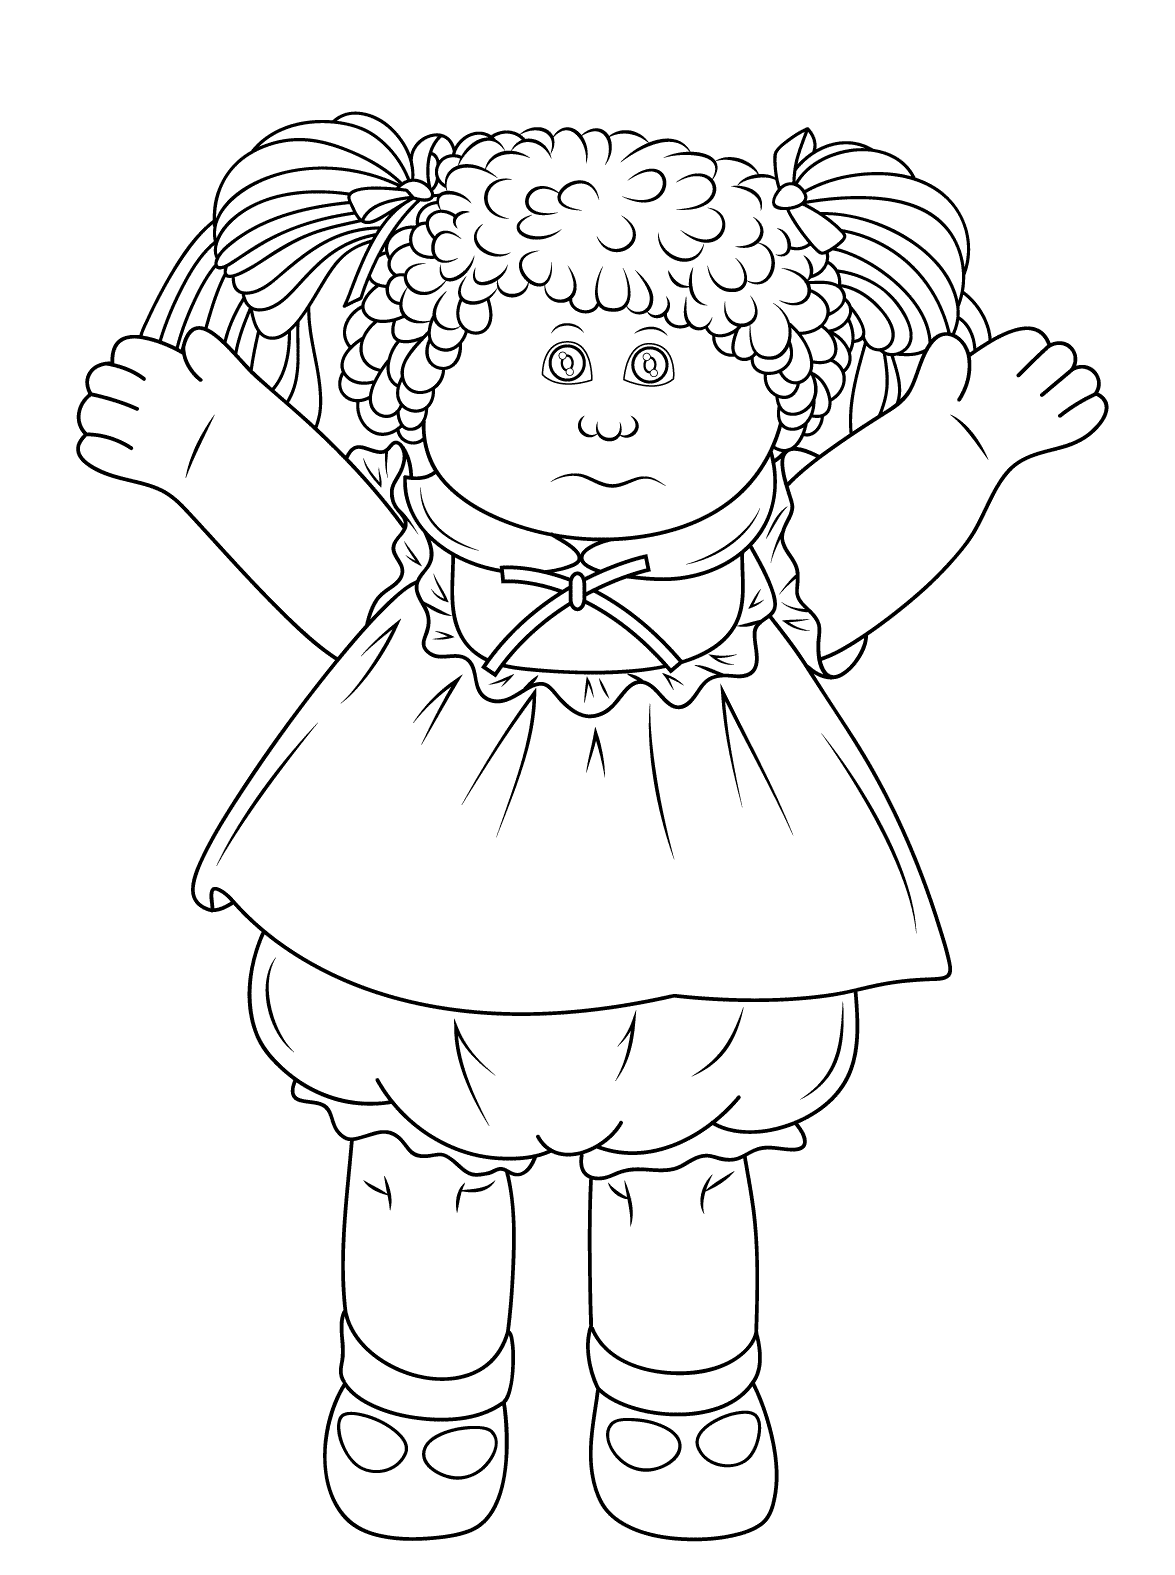 coloring dolls american girl doll coloring pages educative printable coloring dolls